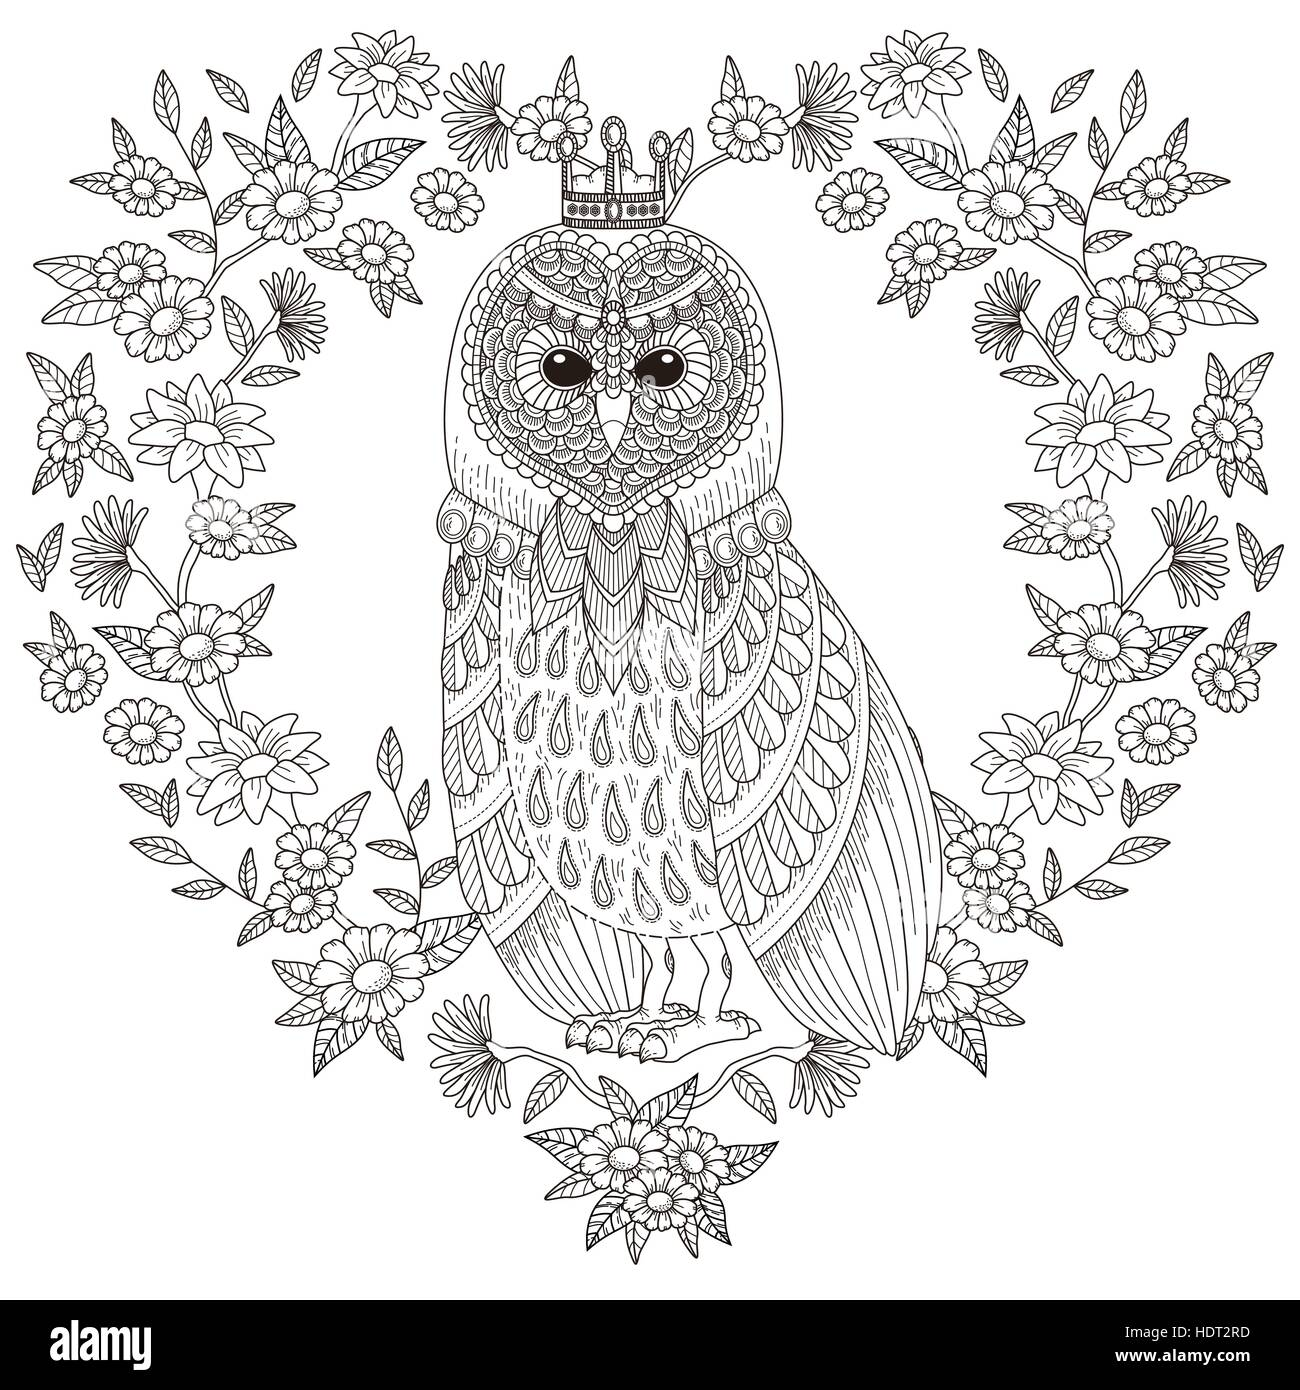 lovely owl coloring page with floral elements in exquisite line HDT2RD